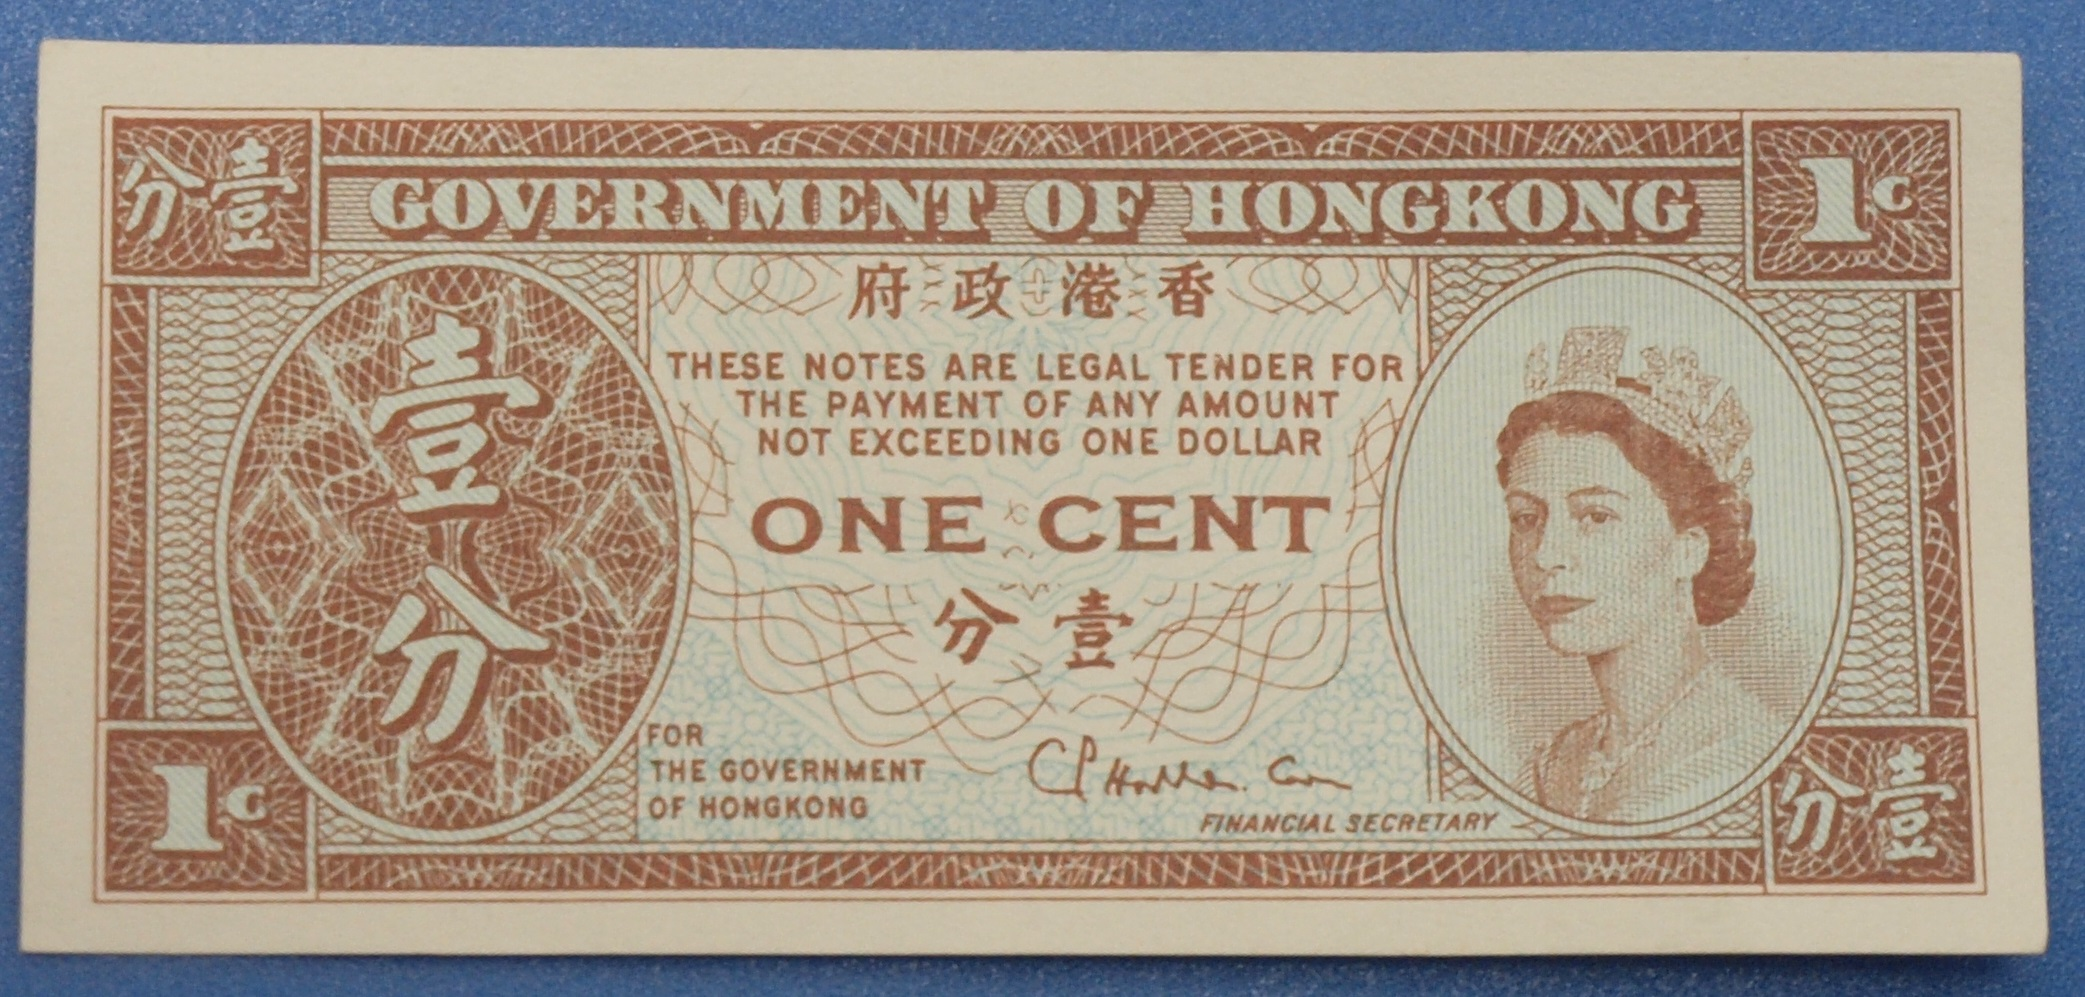 Hong Kong One Cent Note Wikipedia